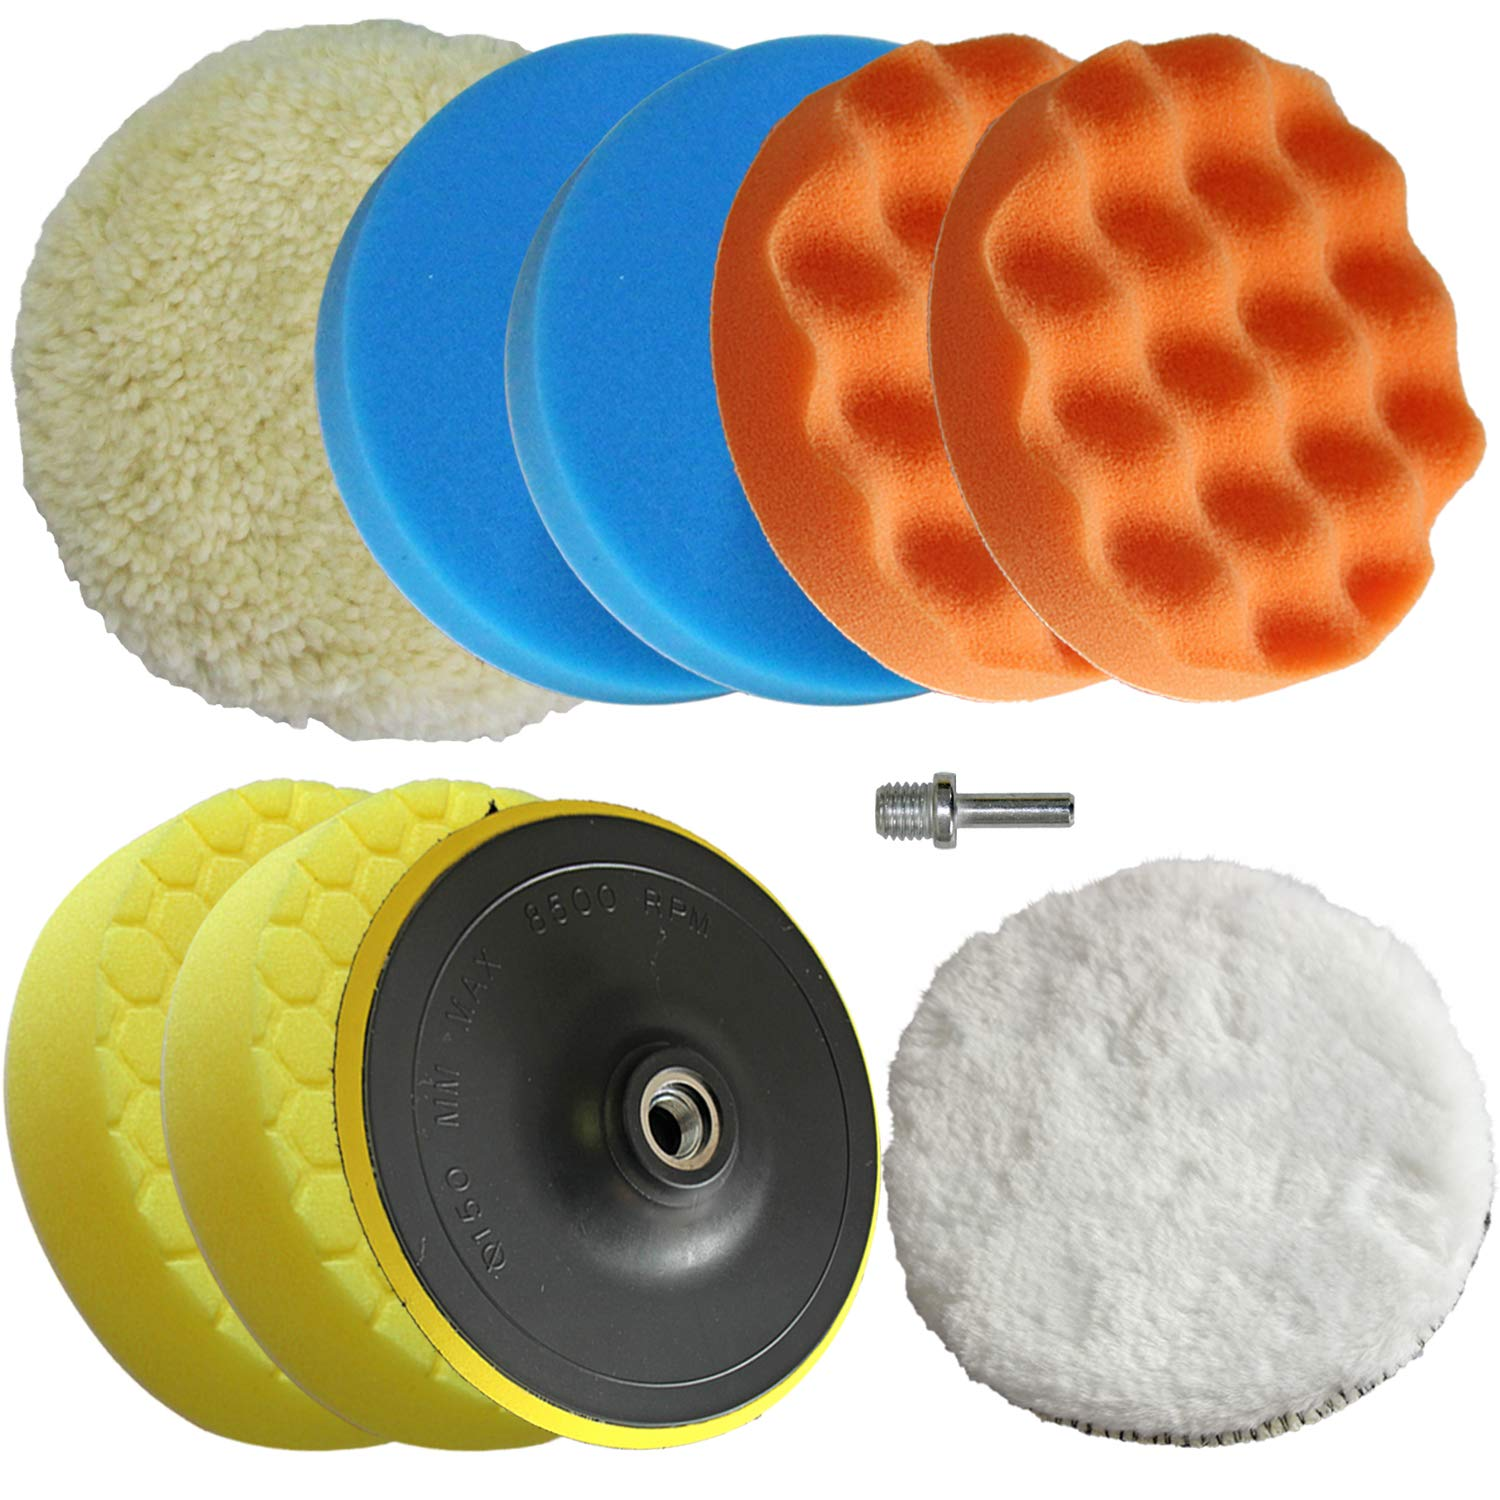 Polishing Pad Buffing Wheel Kit 10PCS with Waffle Foam & Lambs Wool Hook and 6inch Polishing Buffer Wool with M14 Drill Adapter Fit for Metal Aluminum Stainless Steel Chrome Wood Plastic Glass etc